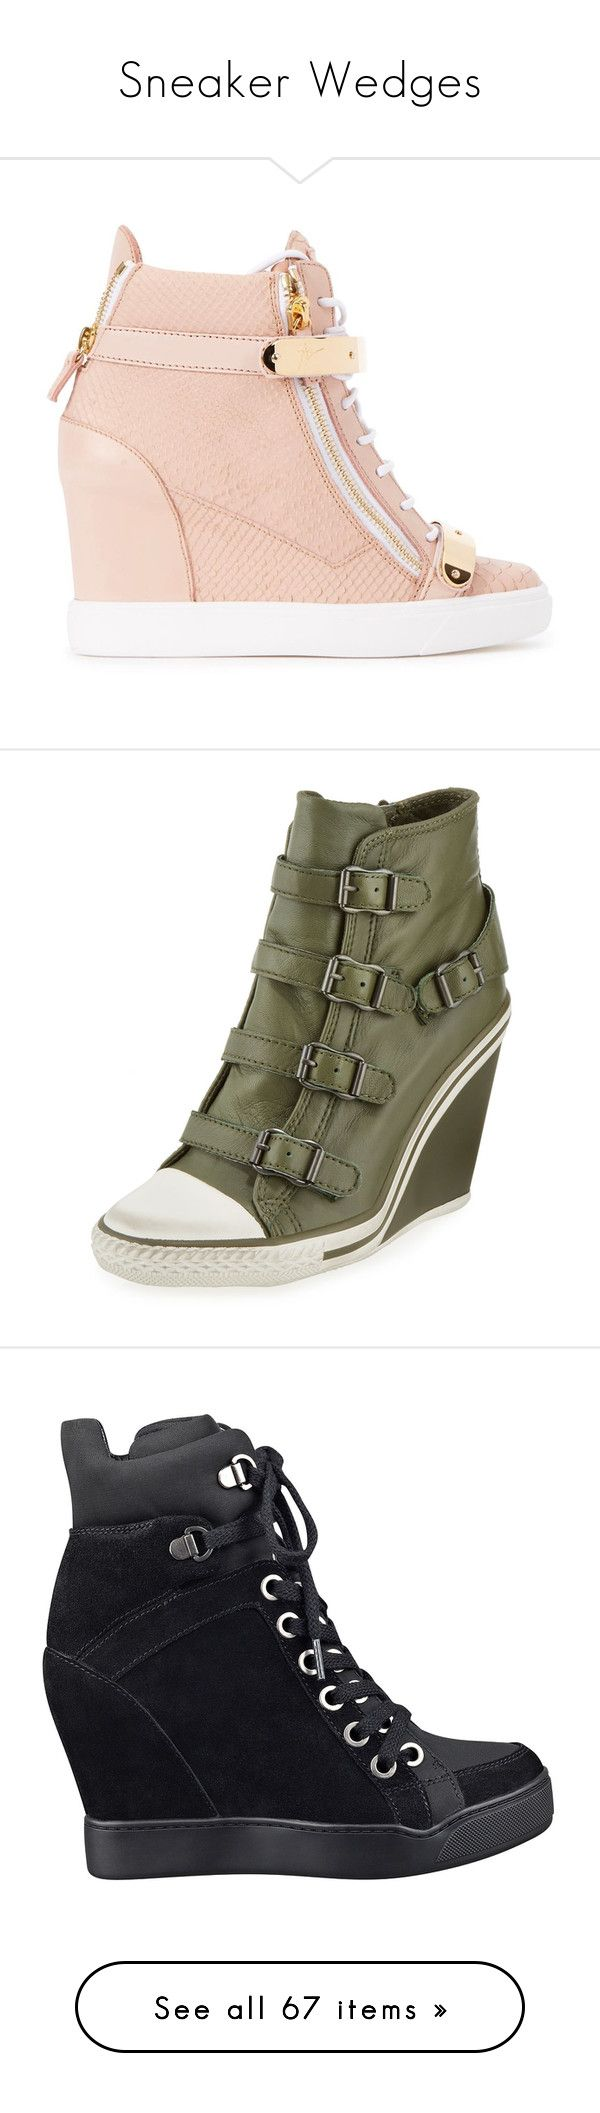 """""""Sneaker Wedges"""" by claudcsilva ❤ liked on Polyvore featuring shoes, sneakers, heels, wedges, leather high top sneakers, leather sneakers, heel sneakers, velcro wedge sneakers, lace up wedge sneakers and military"""